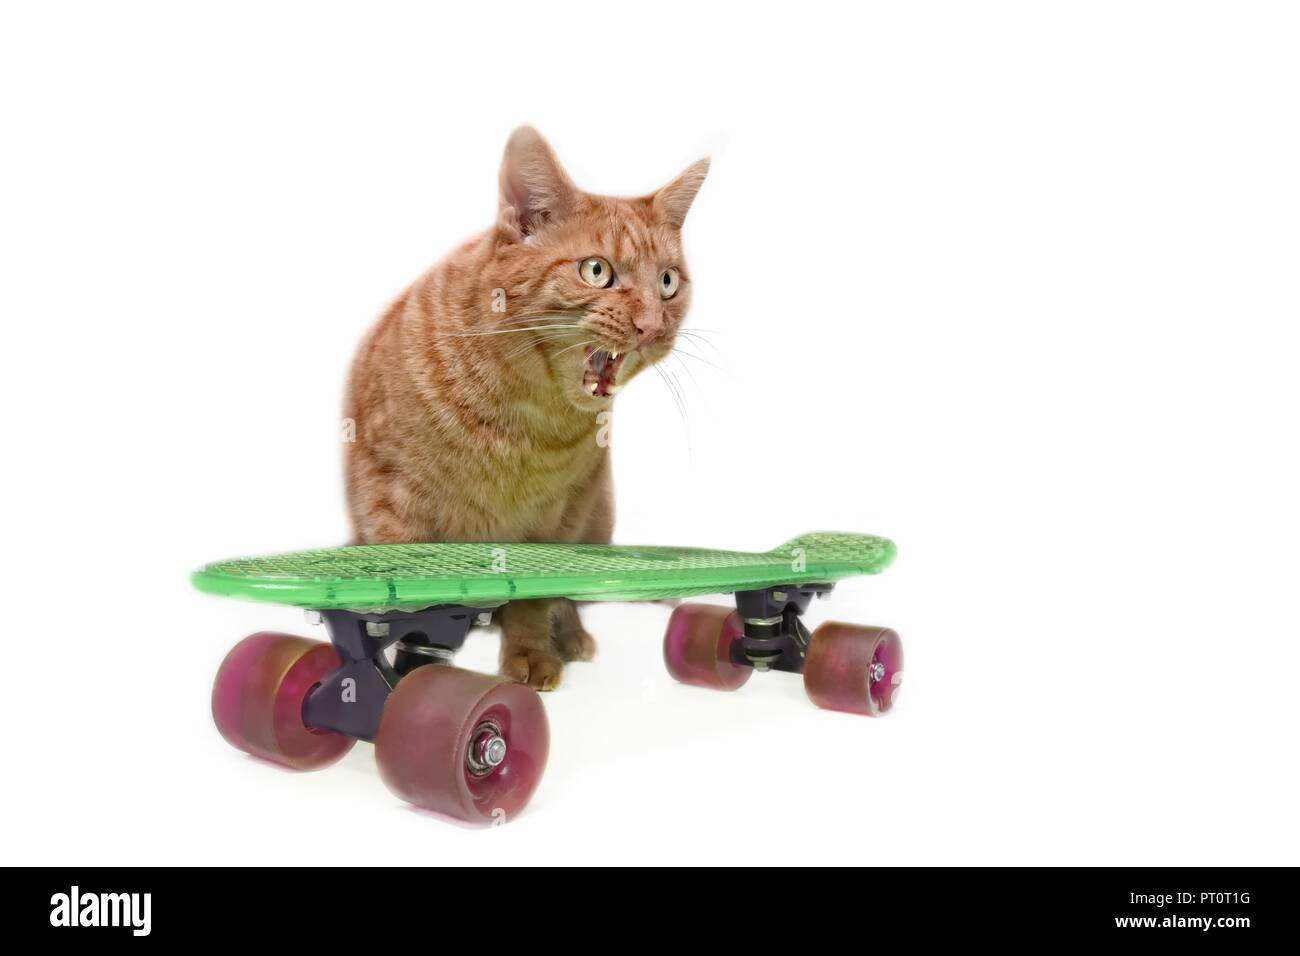 Angry ginger cat looking sideways and hissing with mouth open beside a skateboard. - Stock Image